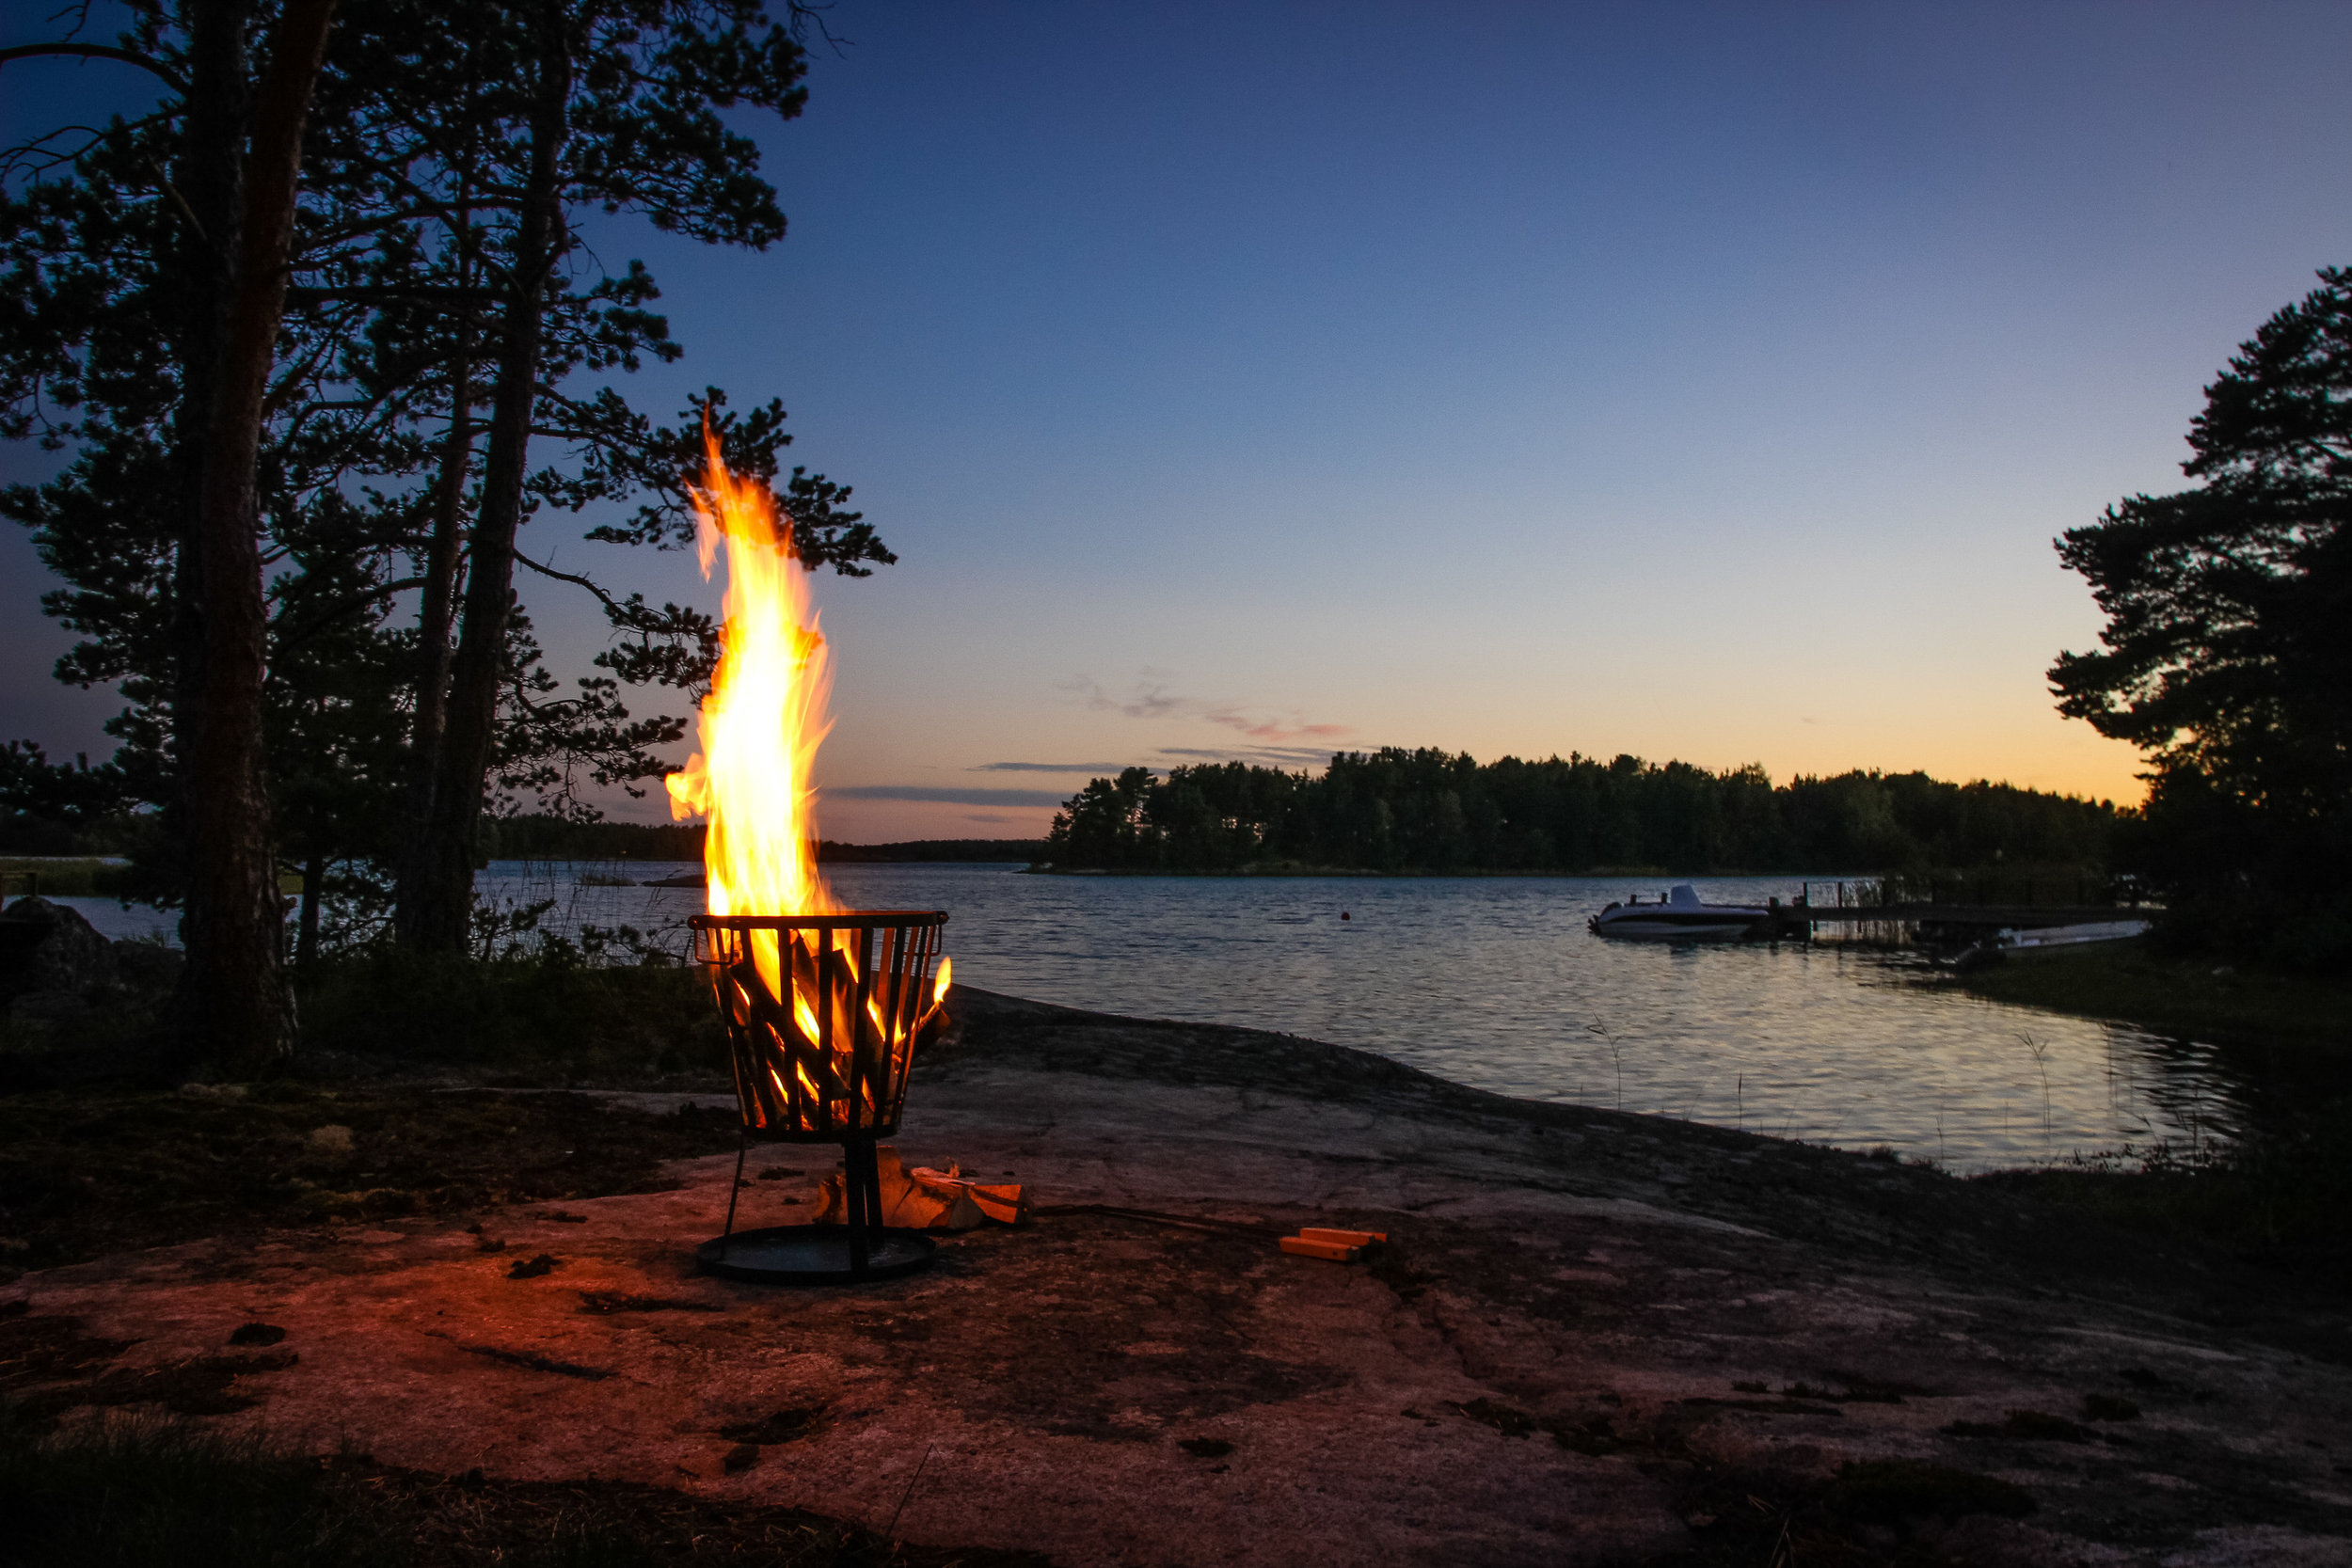 The Night of Ancient Bonfires marks the end of summer